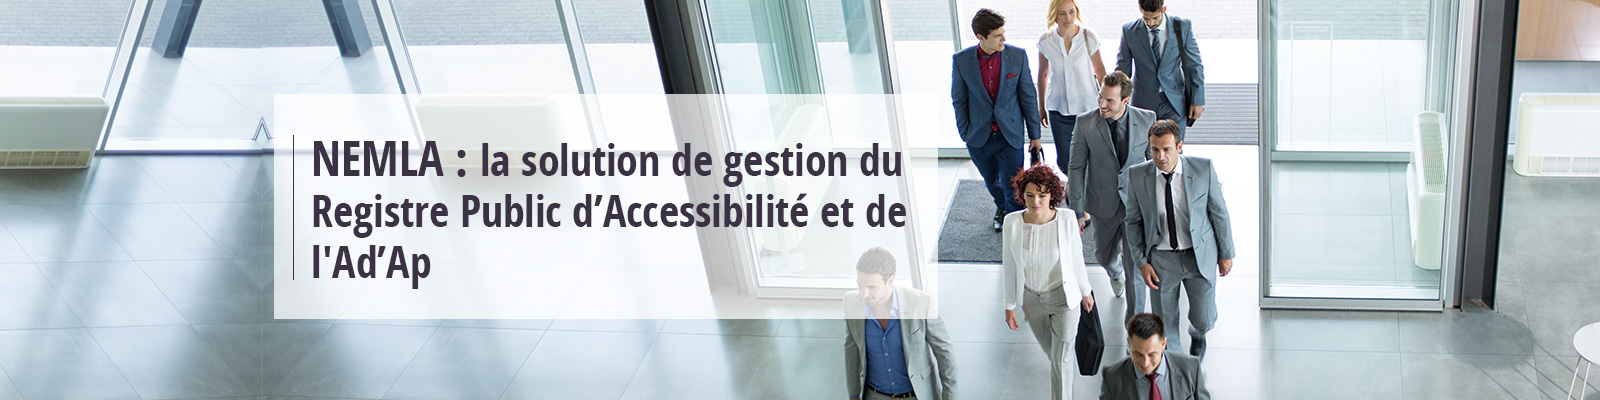 iporta : solution de gestion du registre public d'accessibilité